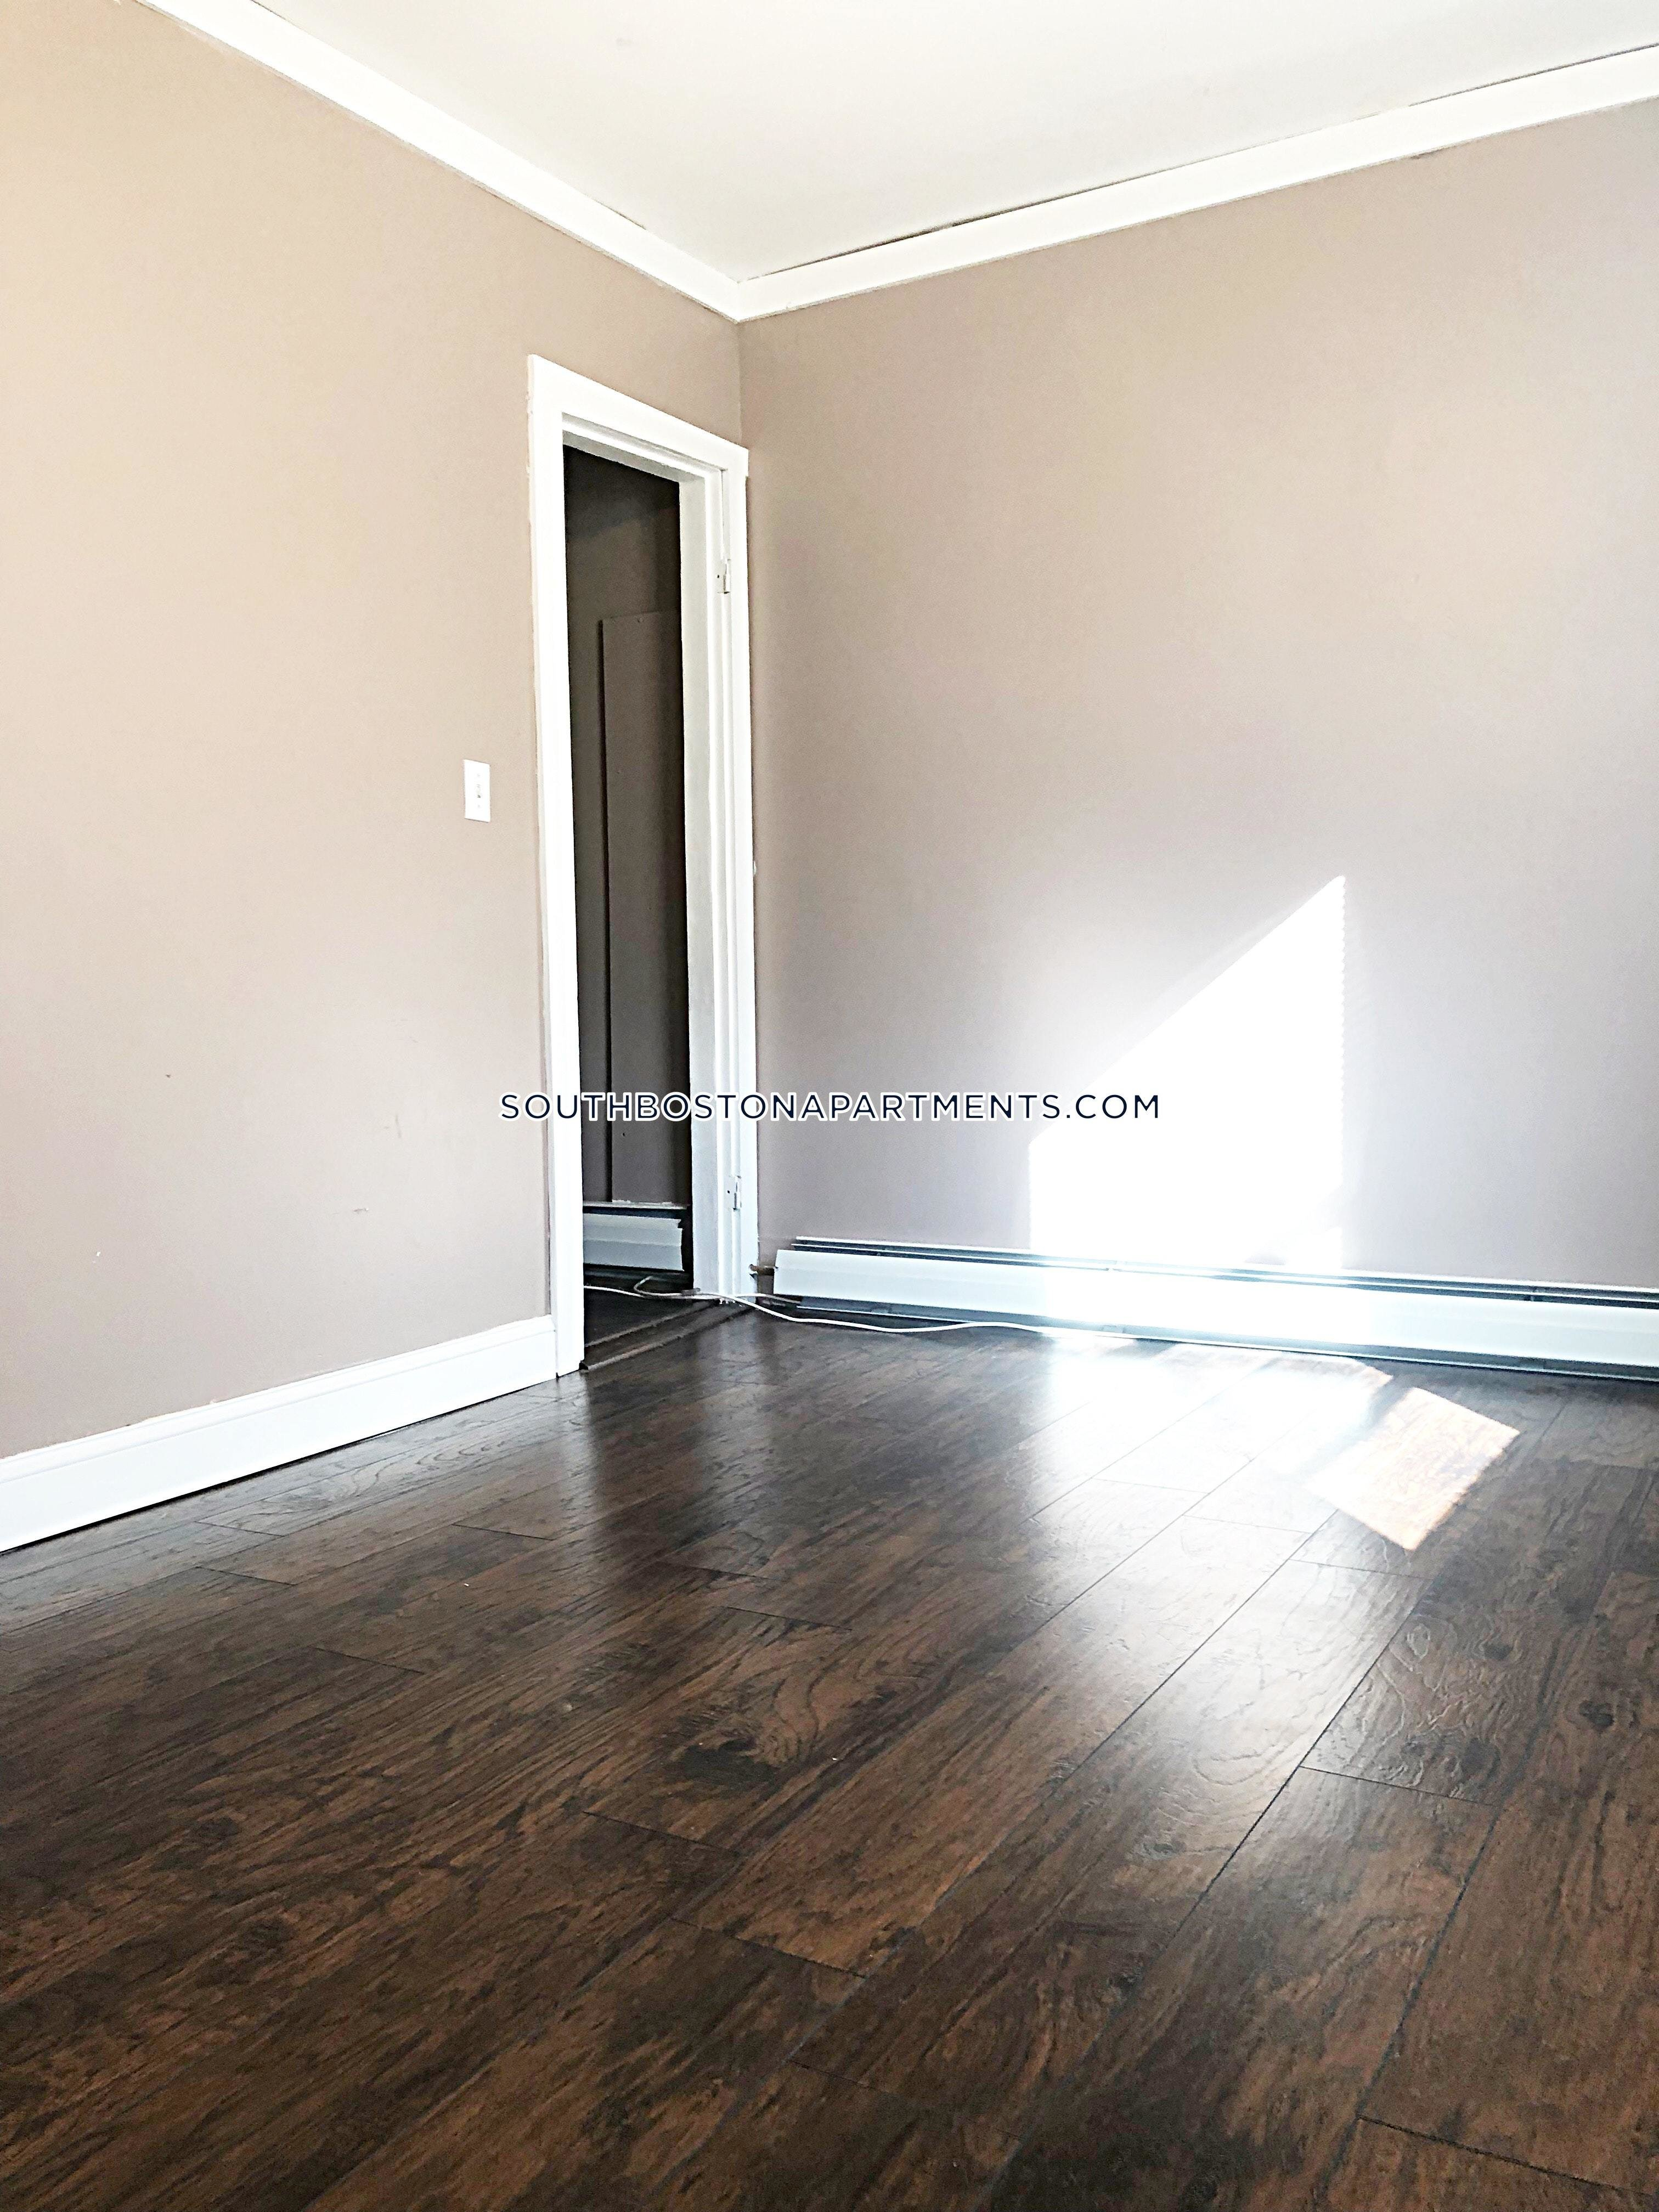 Best South Boston Apartments South Boston Apartment For Rent With Pictures